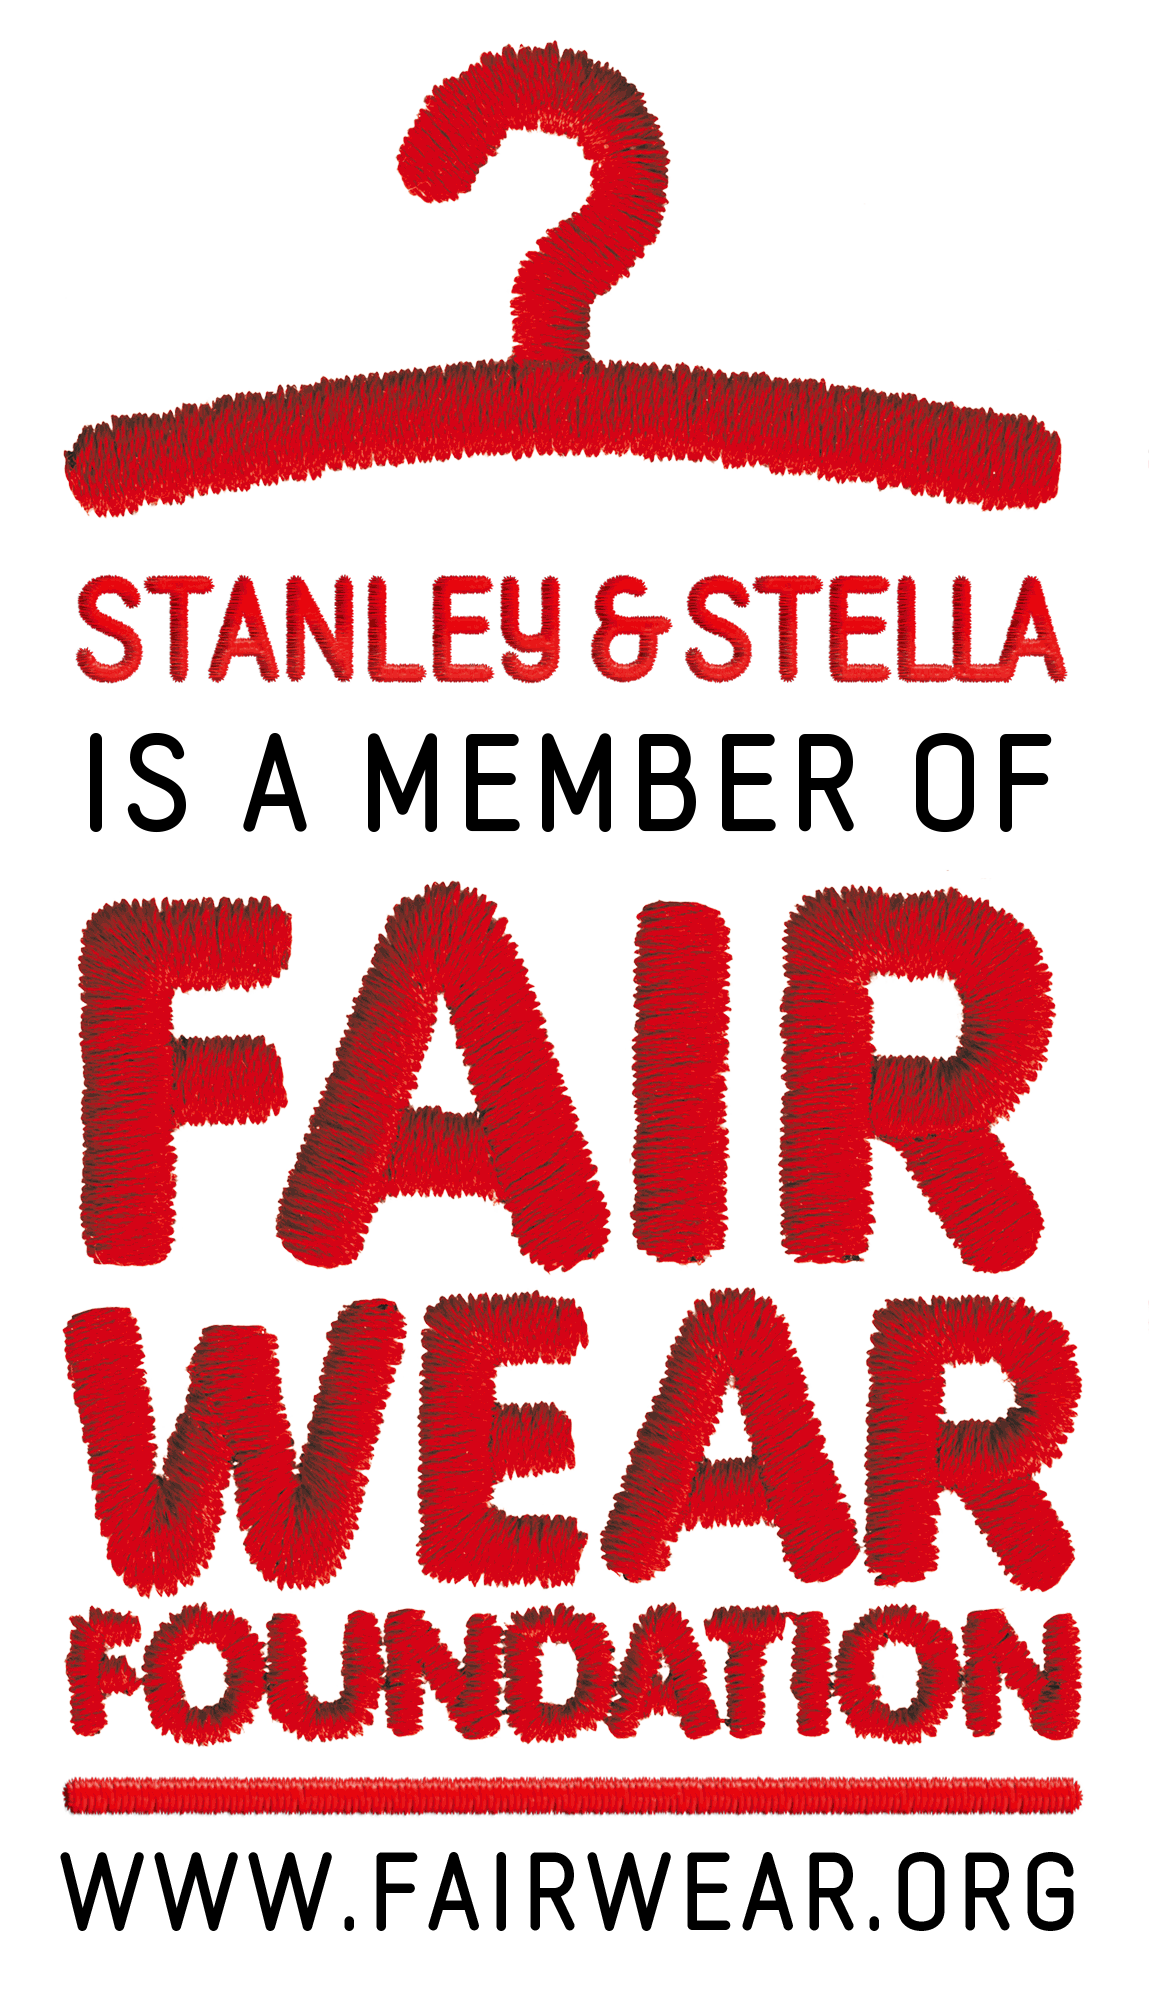 StanleyStella Fairwear Foundation